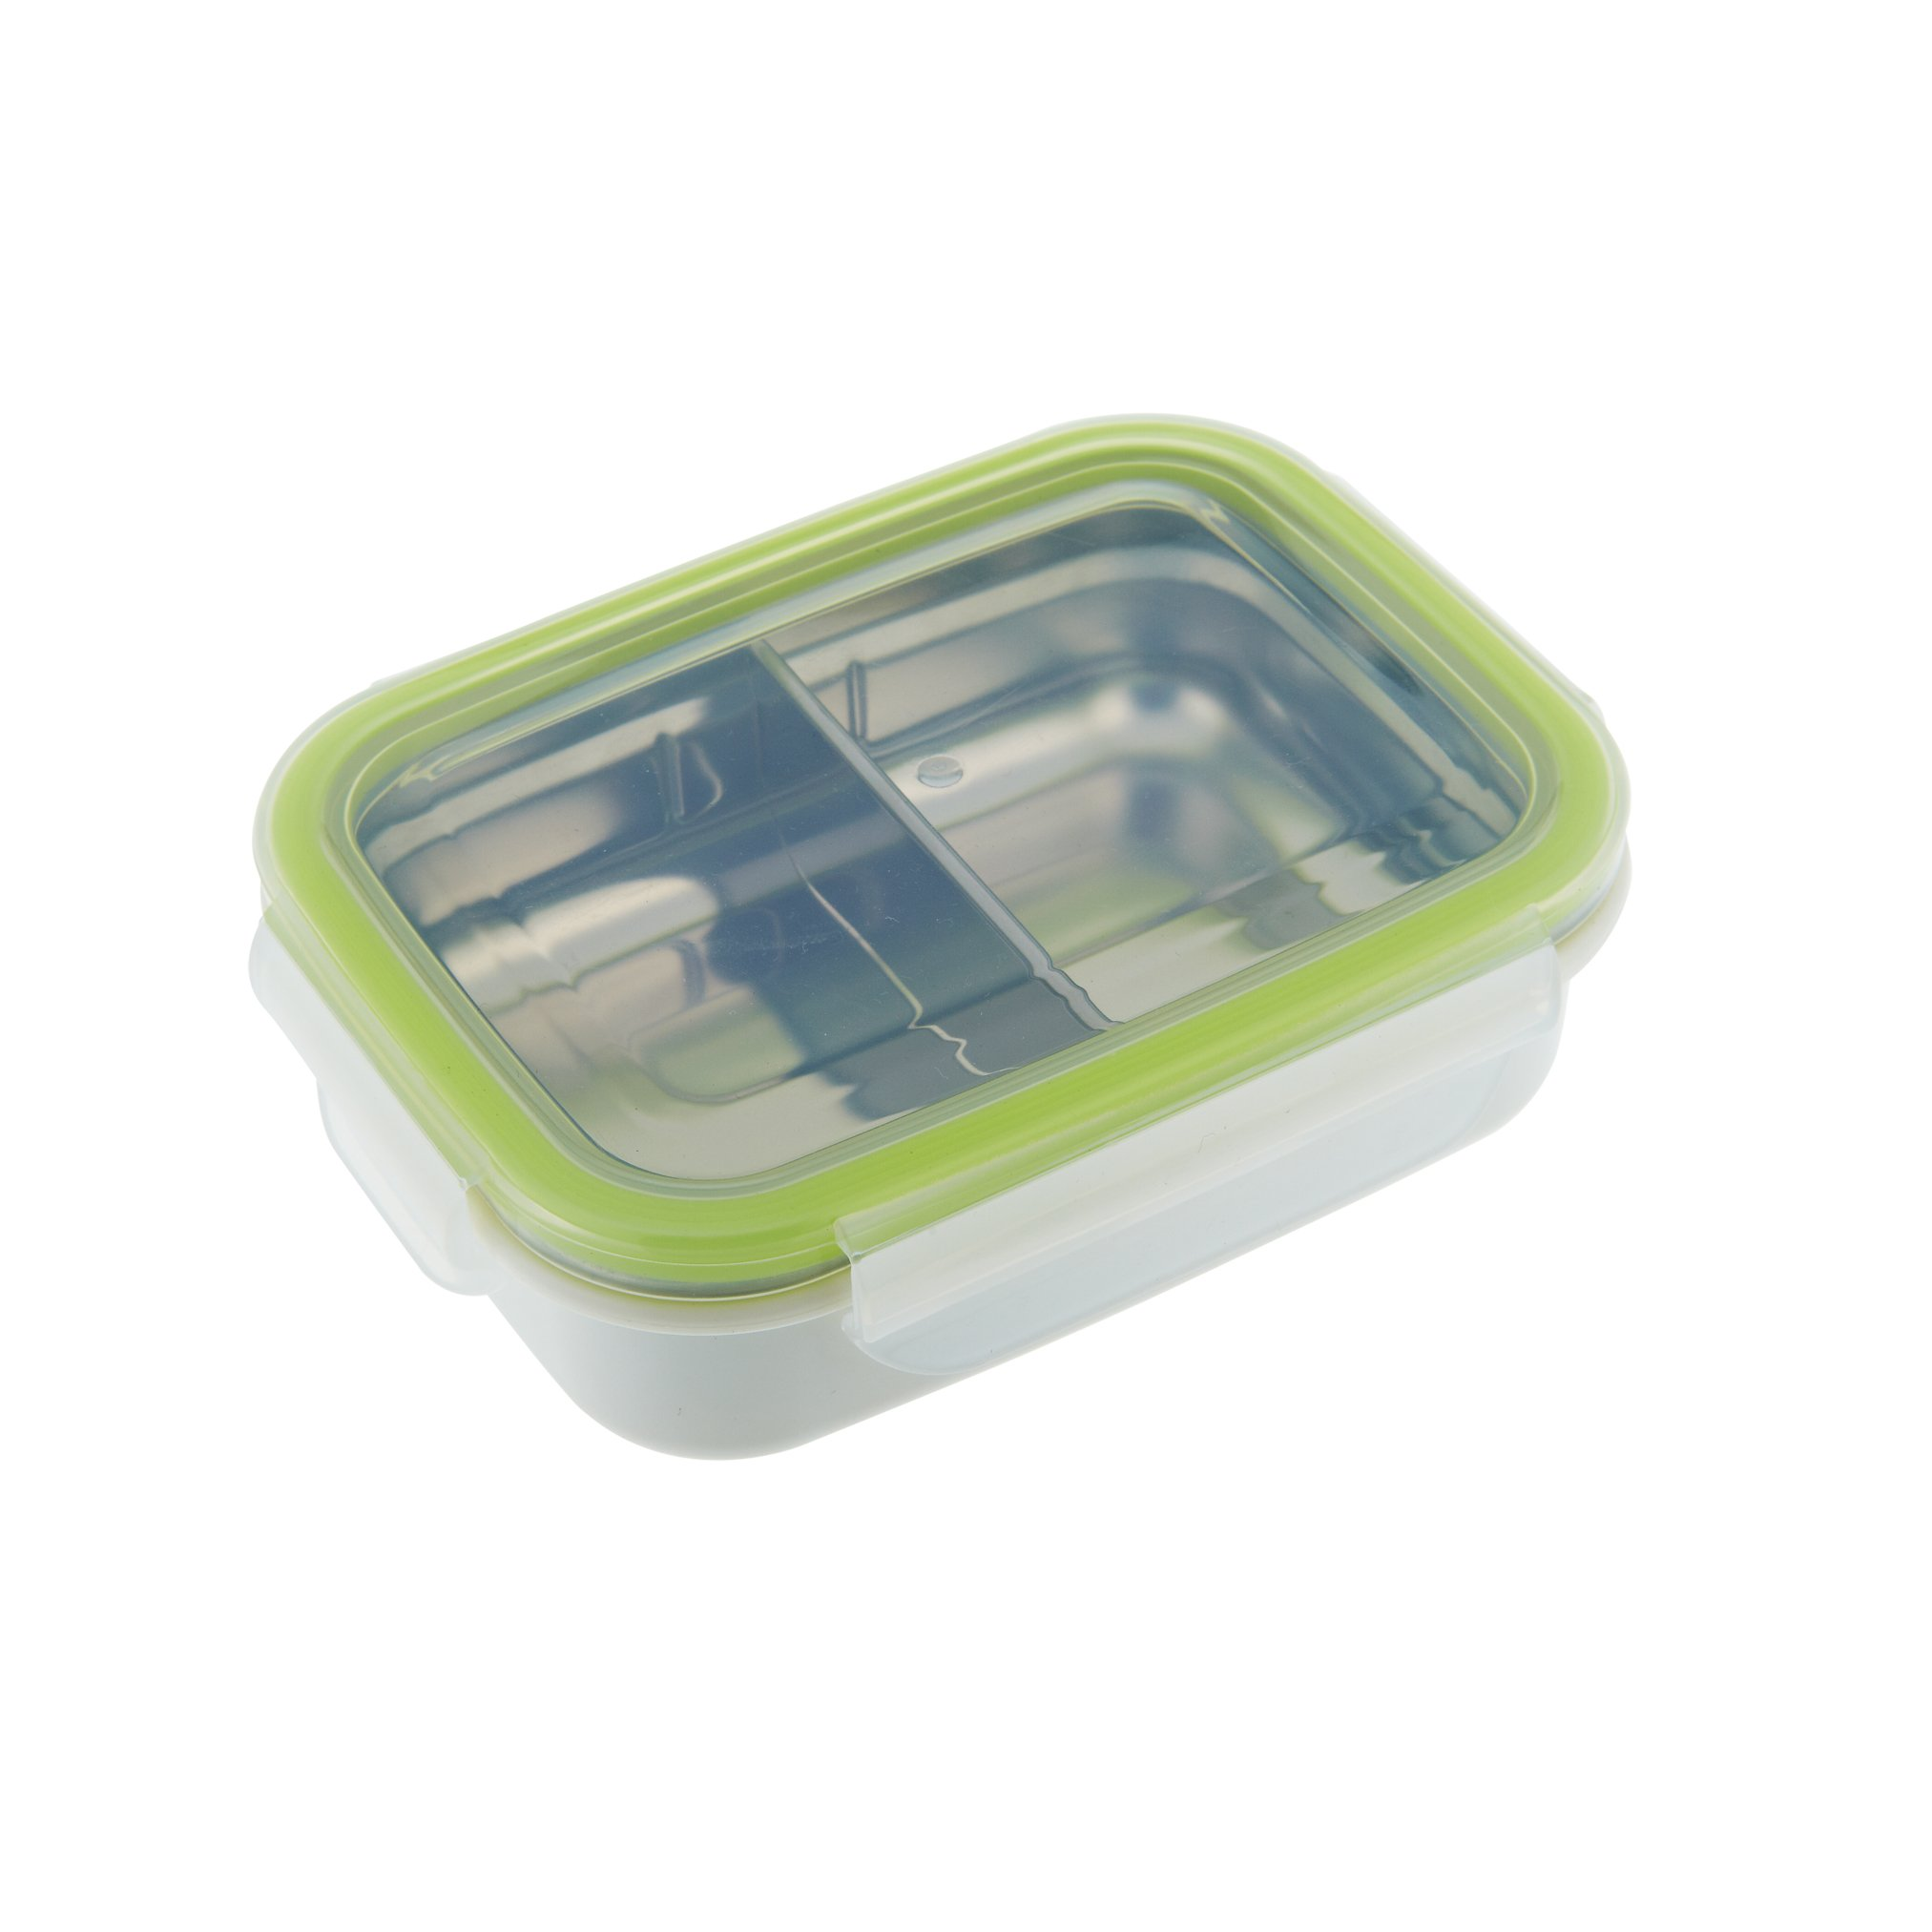 Innobaby Keepin' Fresh Stainless Divided Bento Snack Box with Lid for Kids and Toddlers. BPA Free. Green.